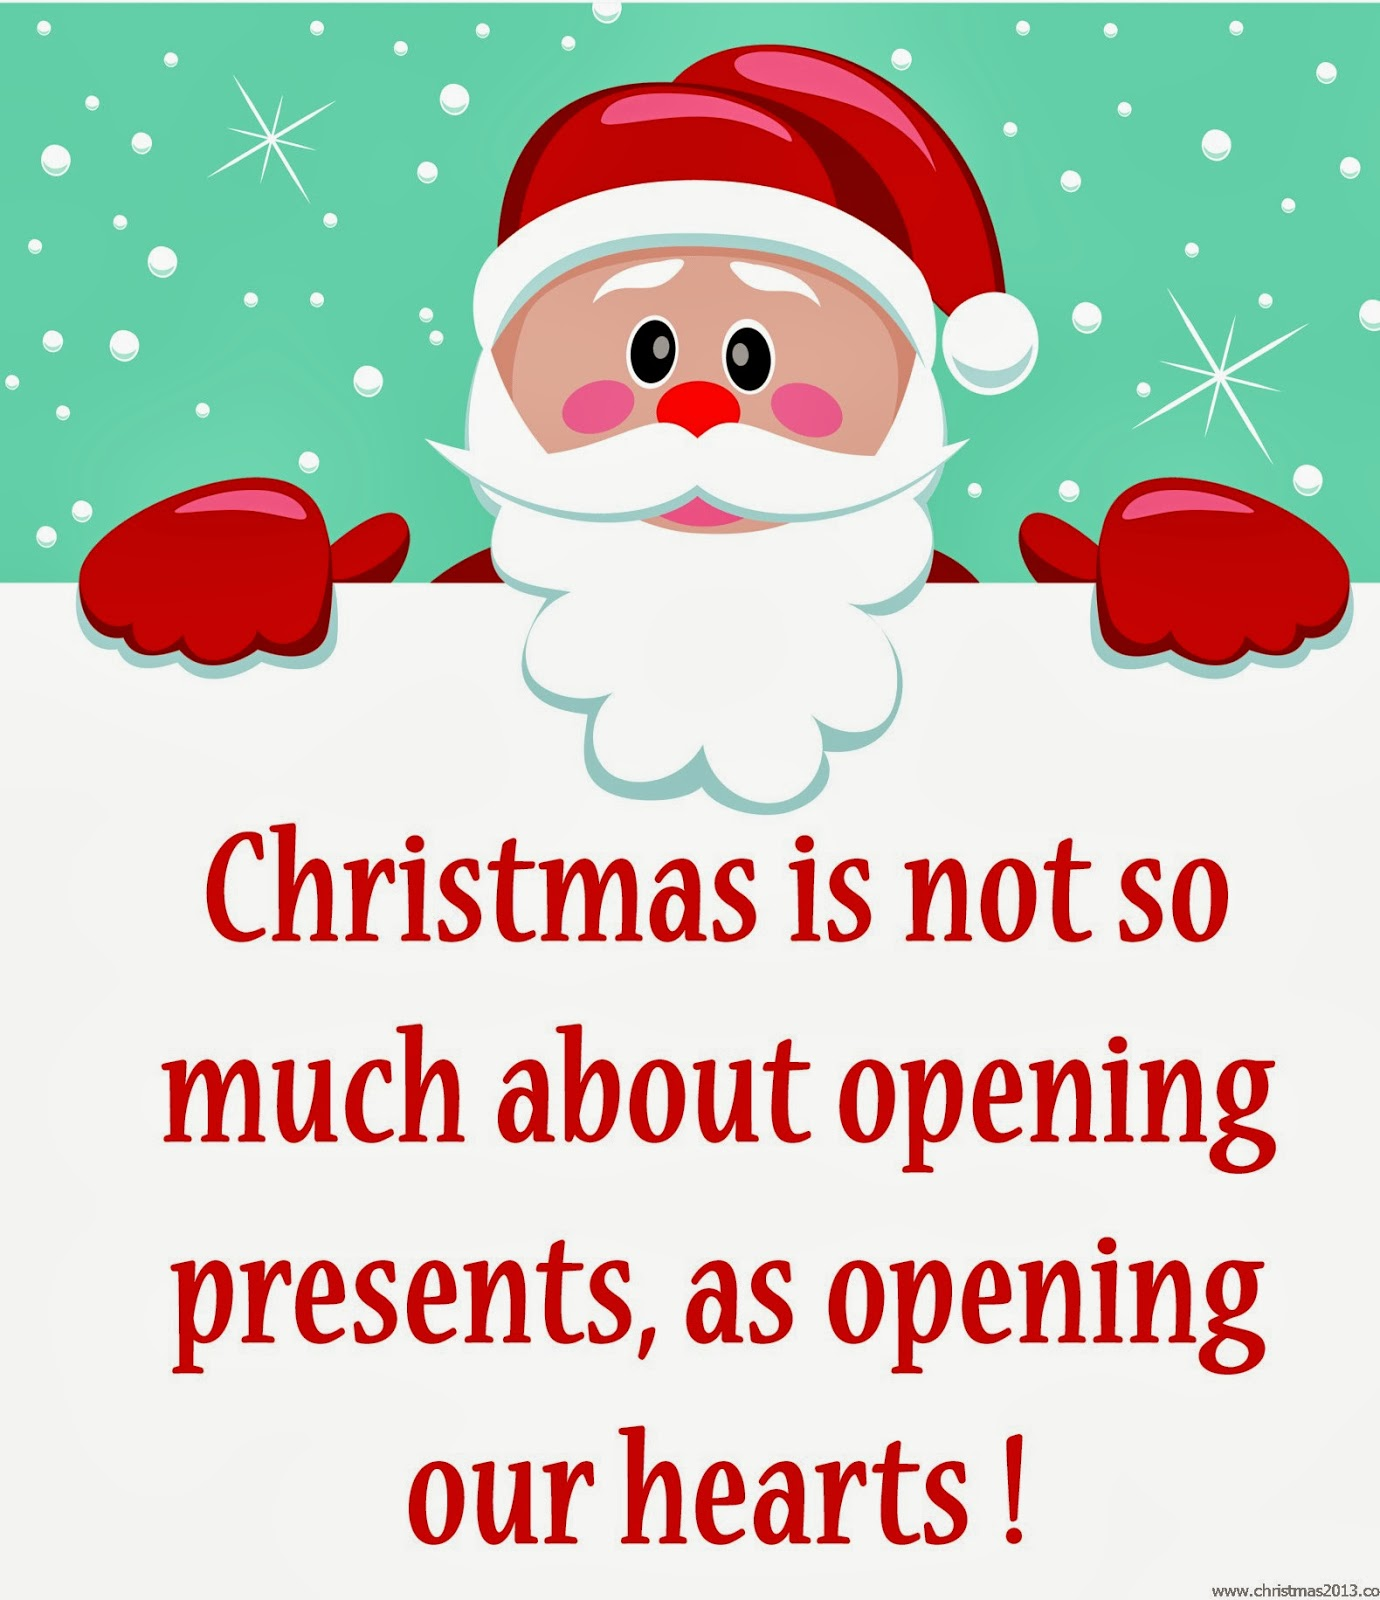 Christmas Quotes: Christmas Quotes To Warm Your Heart This Holiday